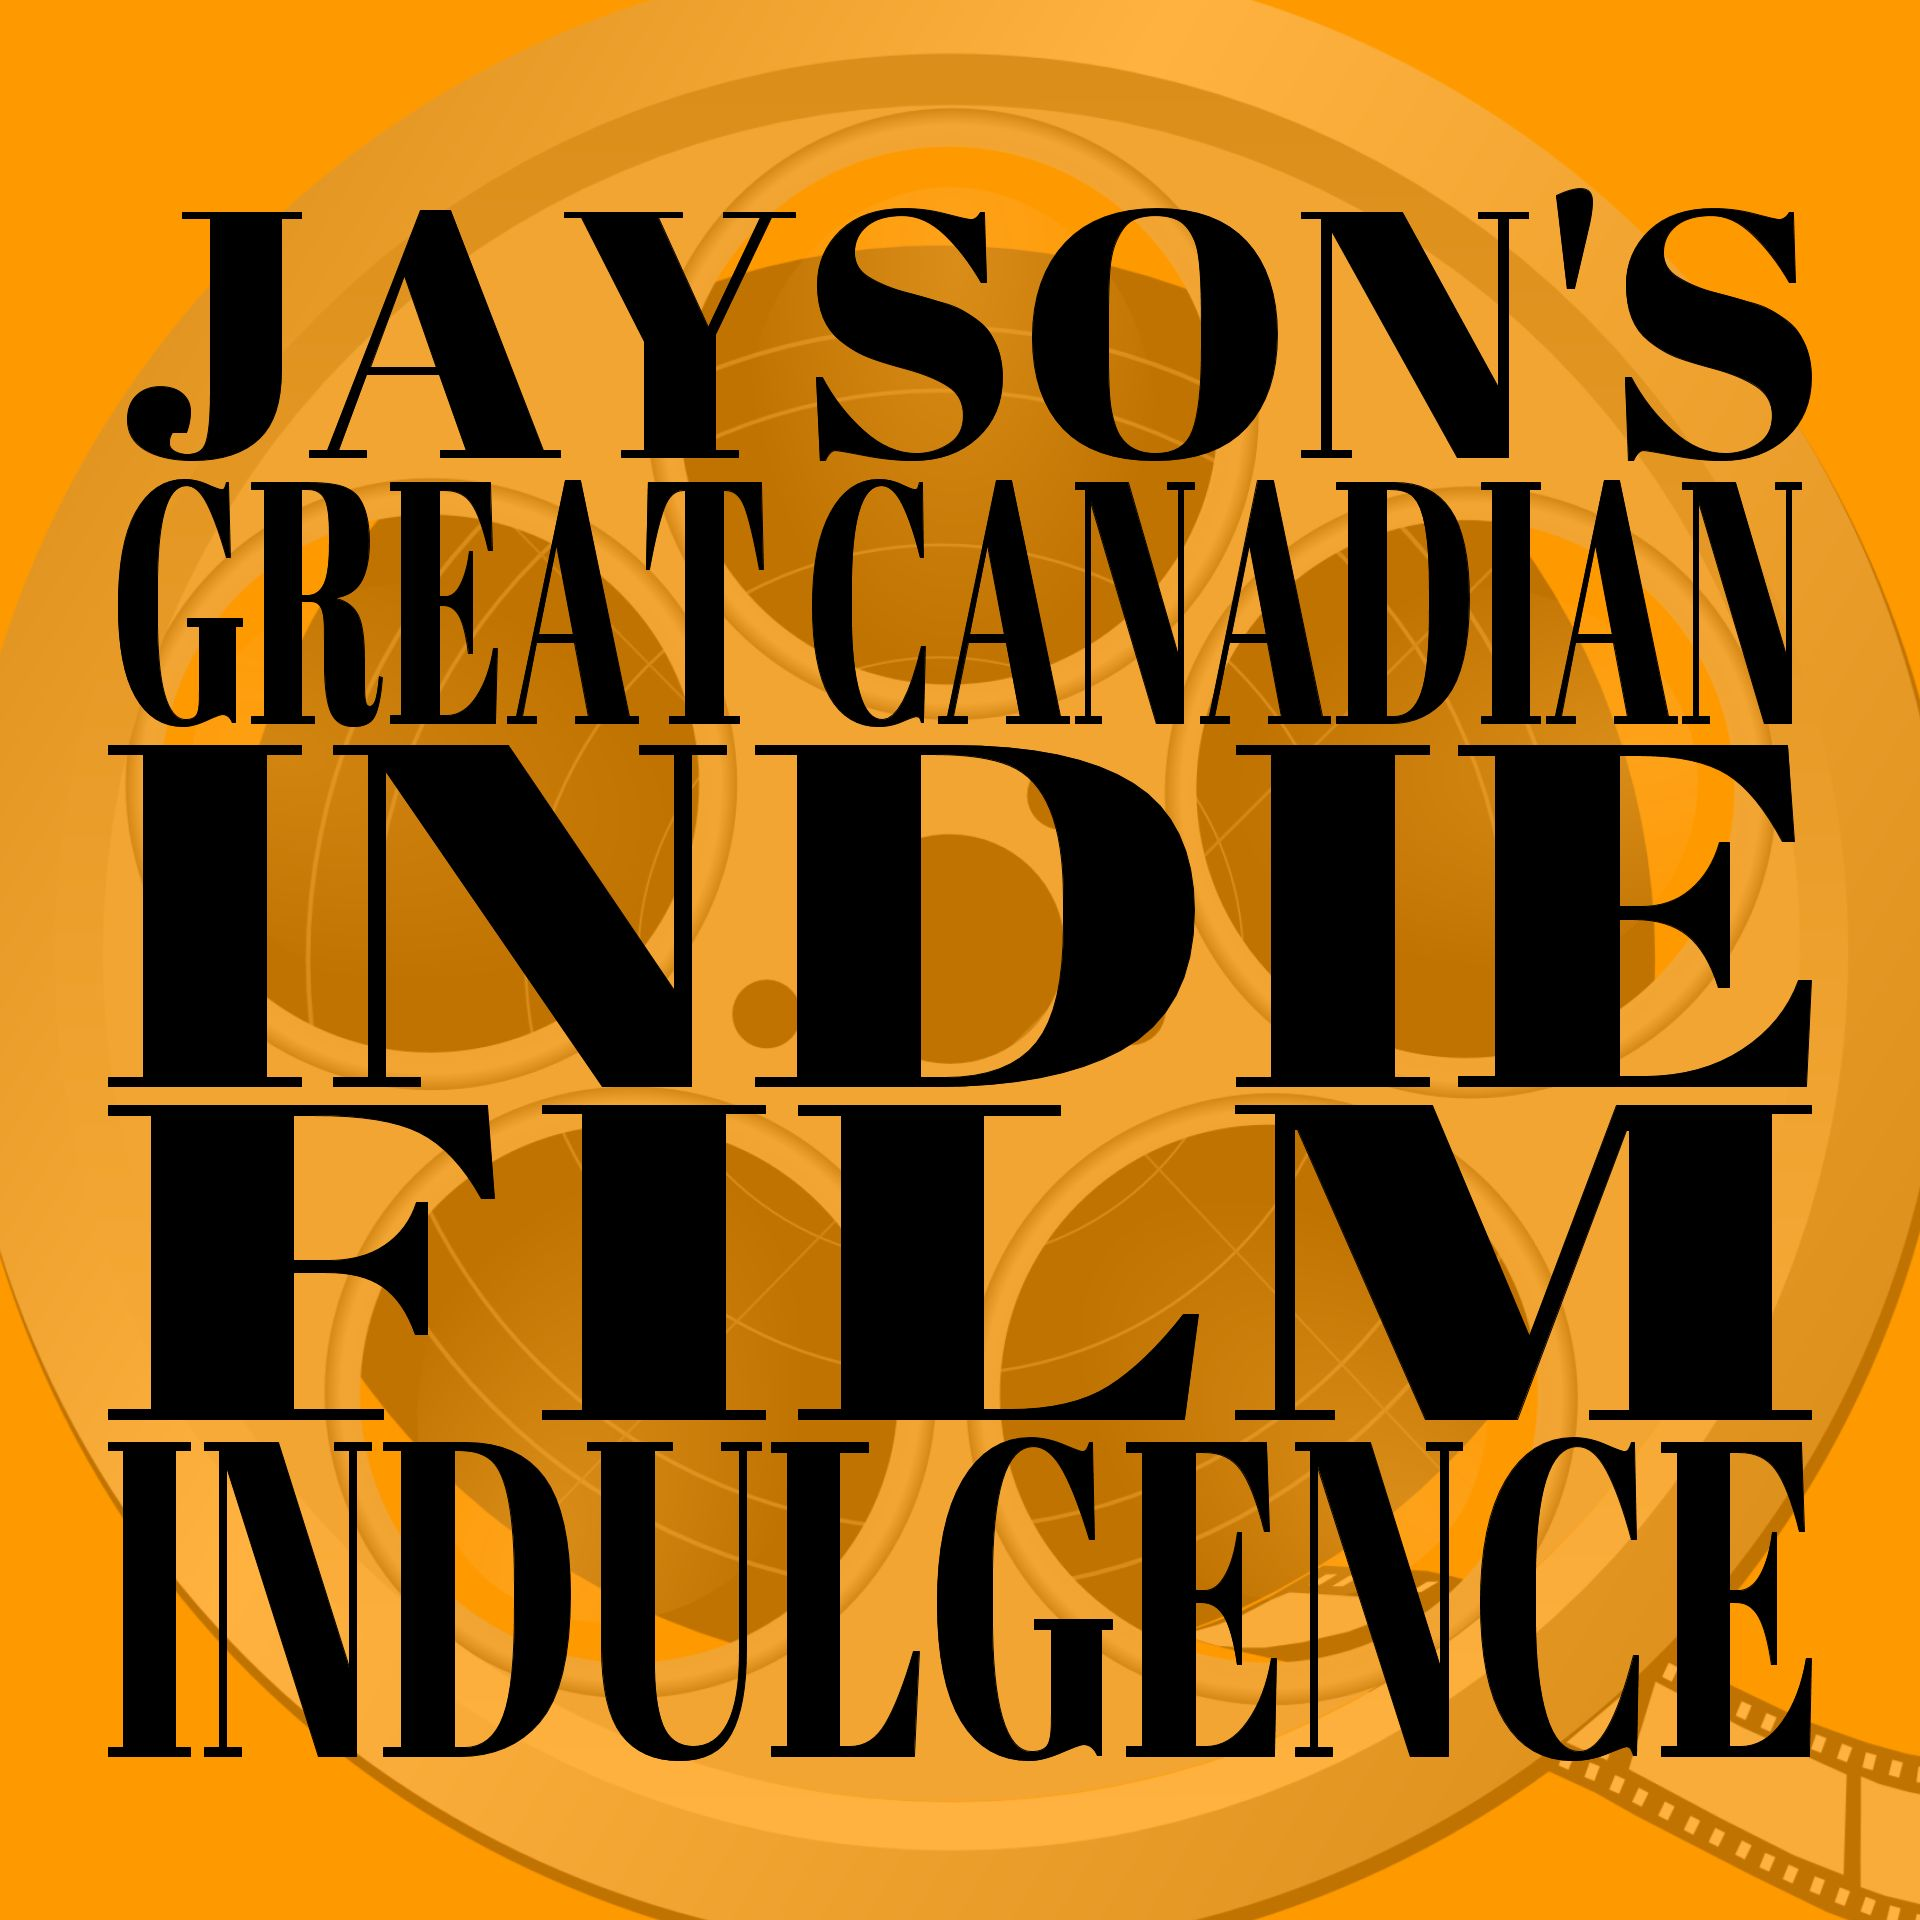 Jayson's Great Canadian Indie Film Indulgence